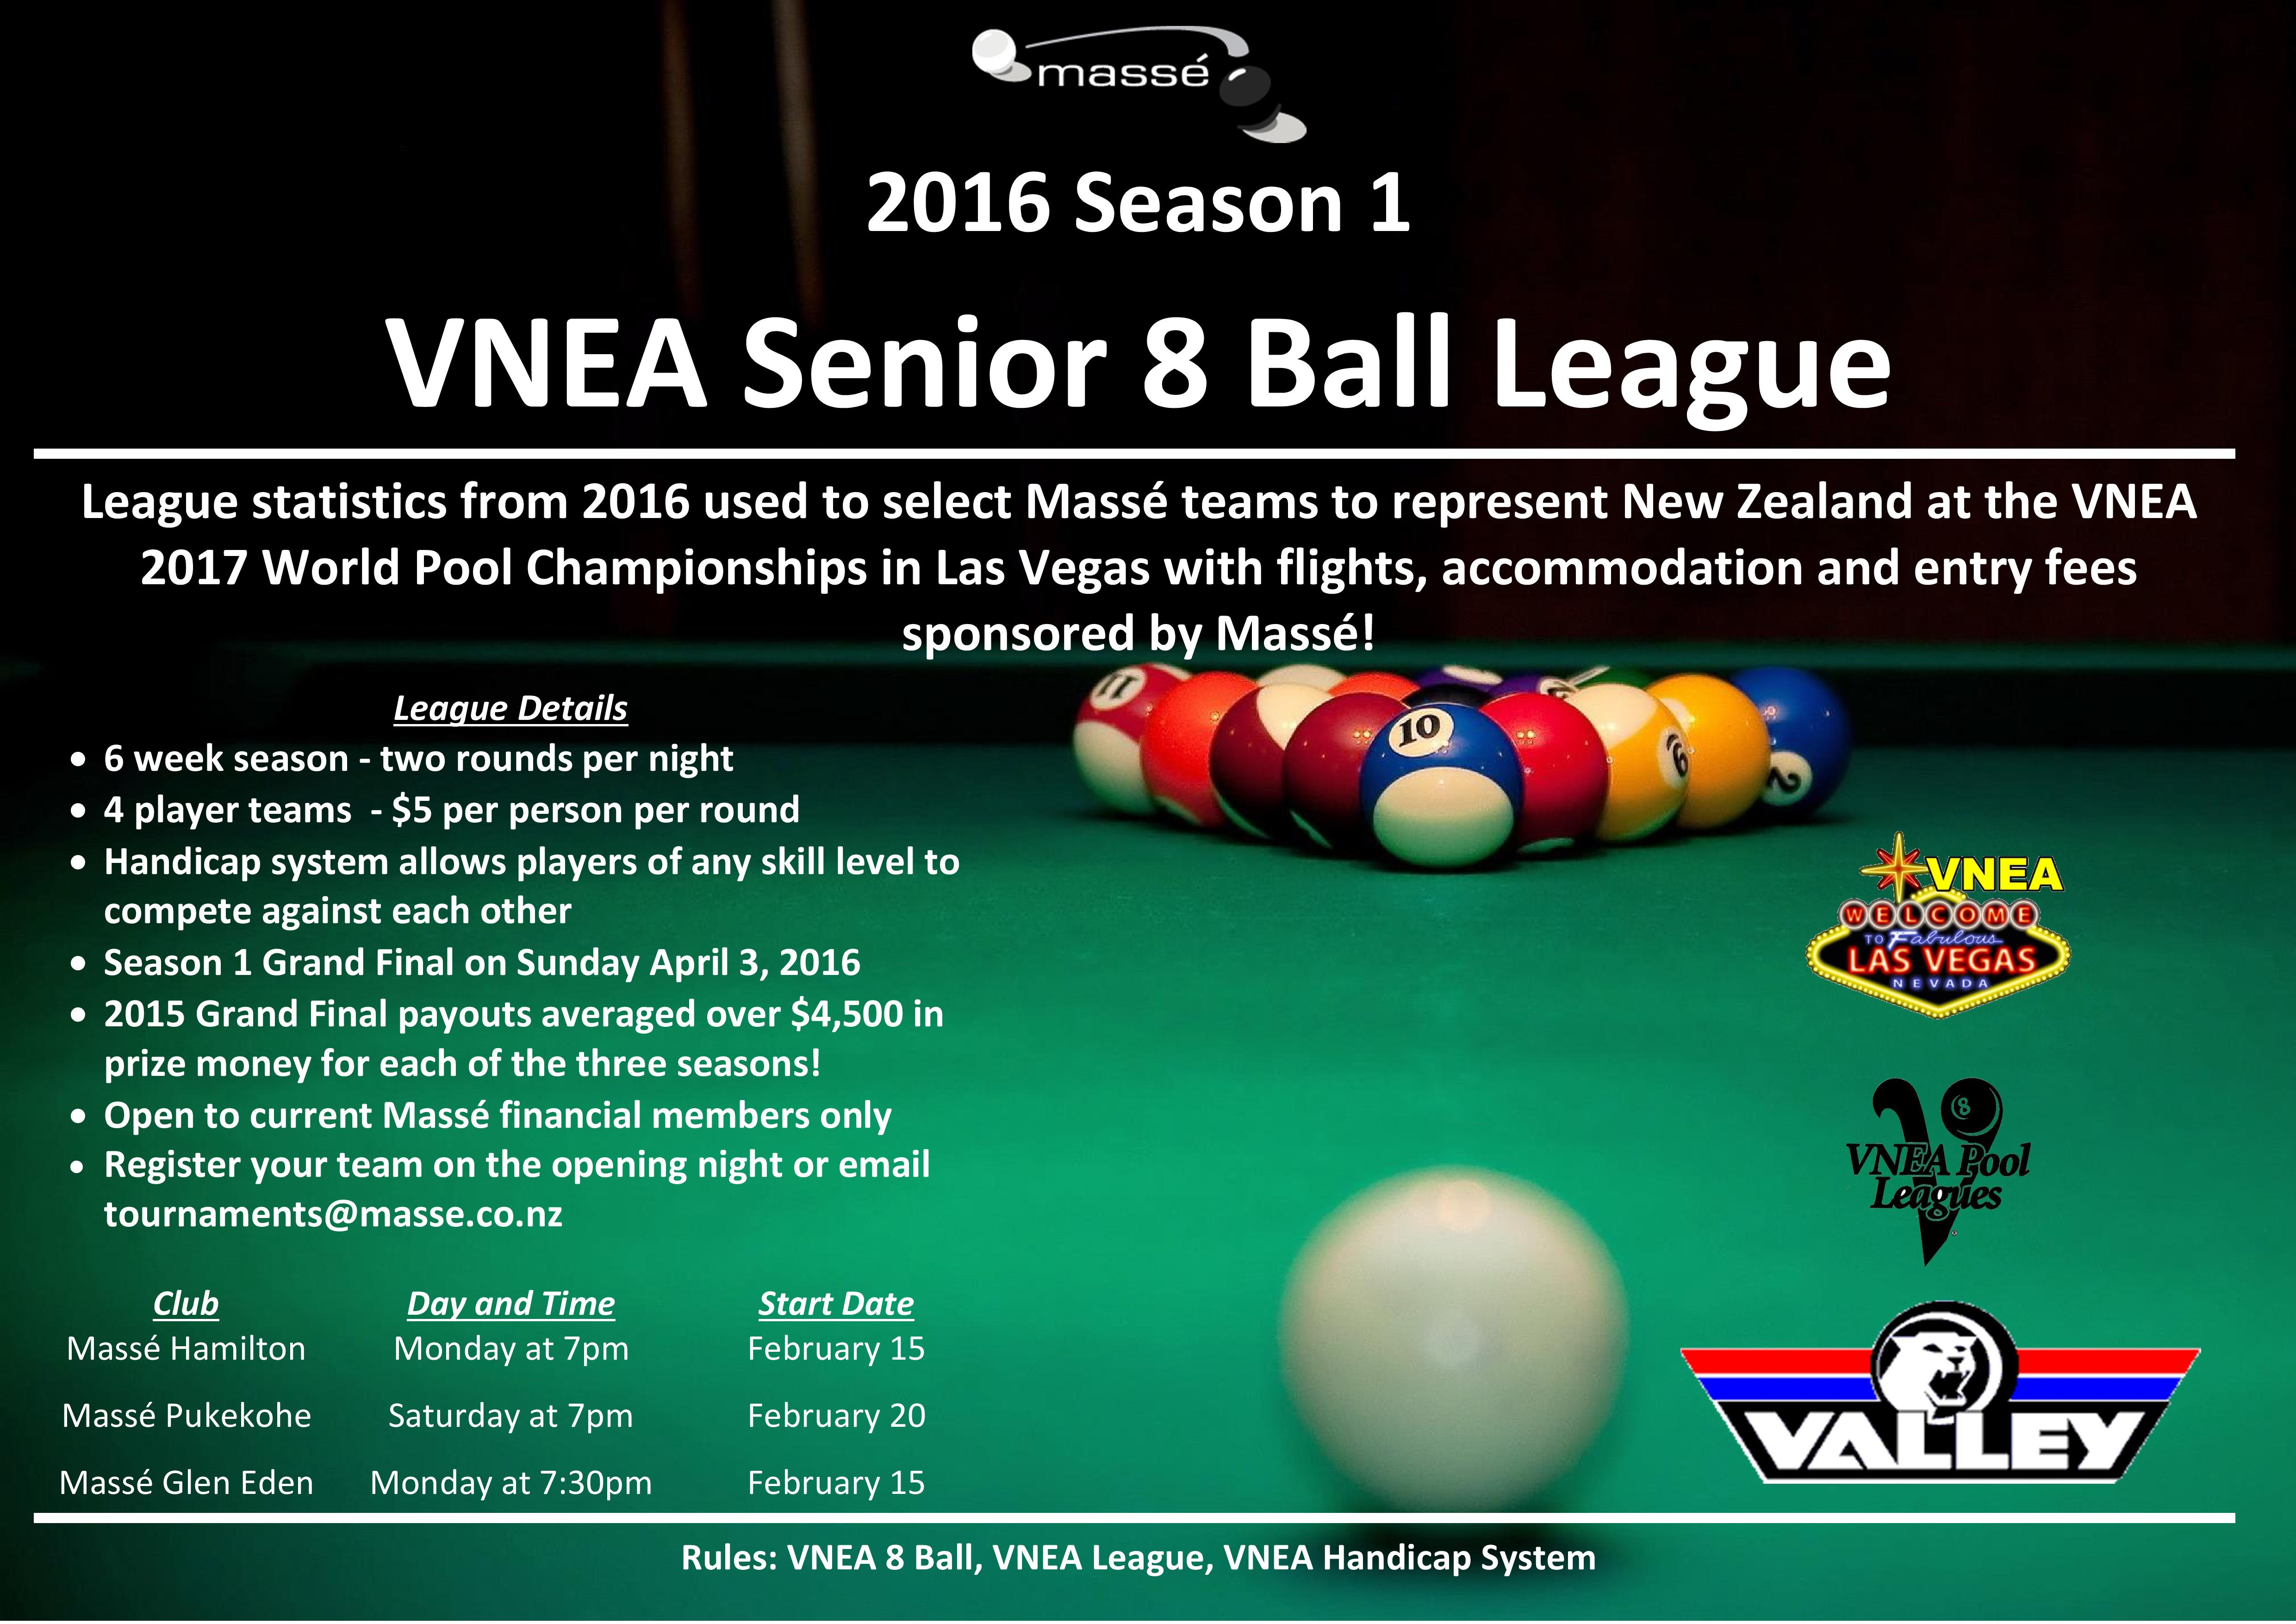 2016-s1-vnea-senior-8-ball-league